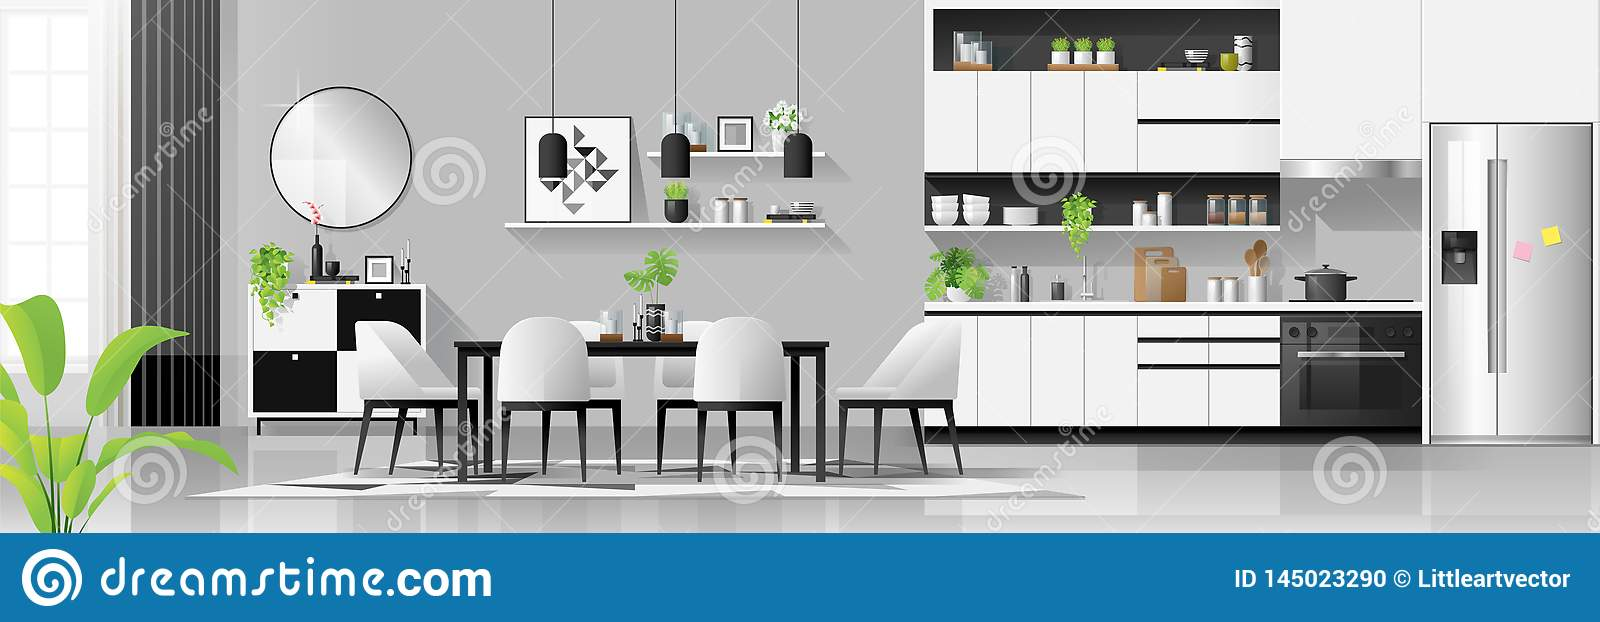 Modern Black And White House Interior Background With Kitchen And Dining Room Combination Stock Vector Illustration Of Cozy Homey 145023290,Pop Simple Design For Hall Without Ceiling